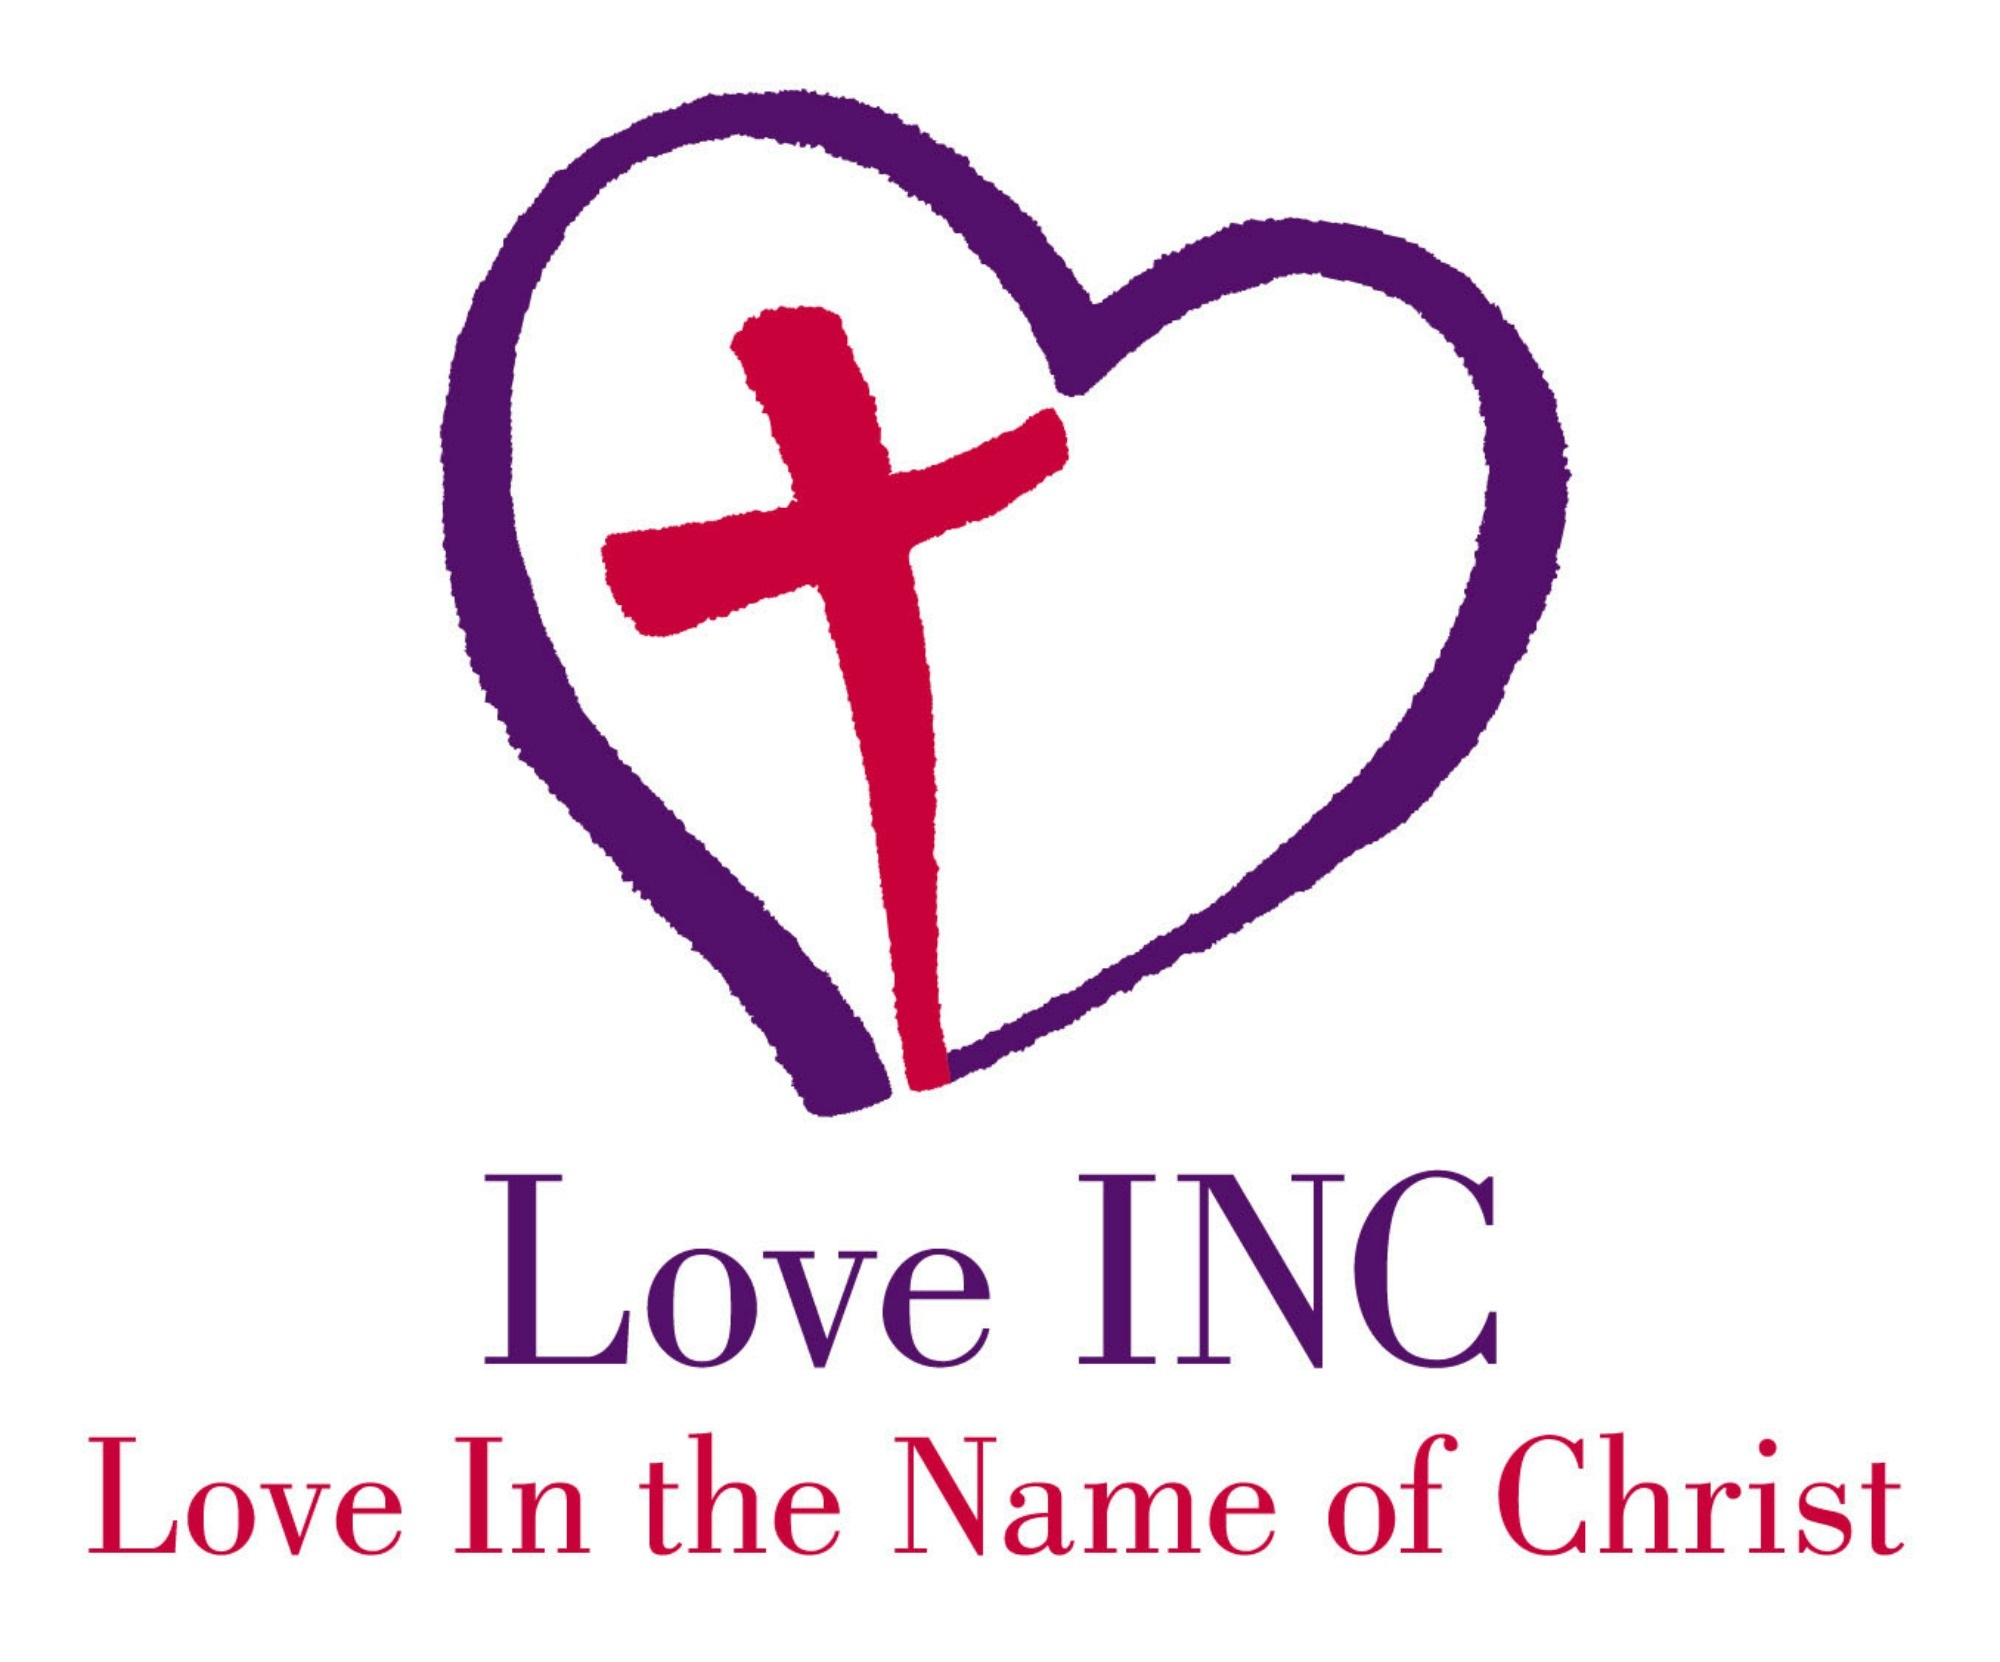 We are honored to serve the community of Juneau in the Name of Christ, with love.